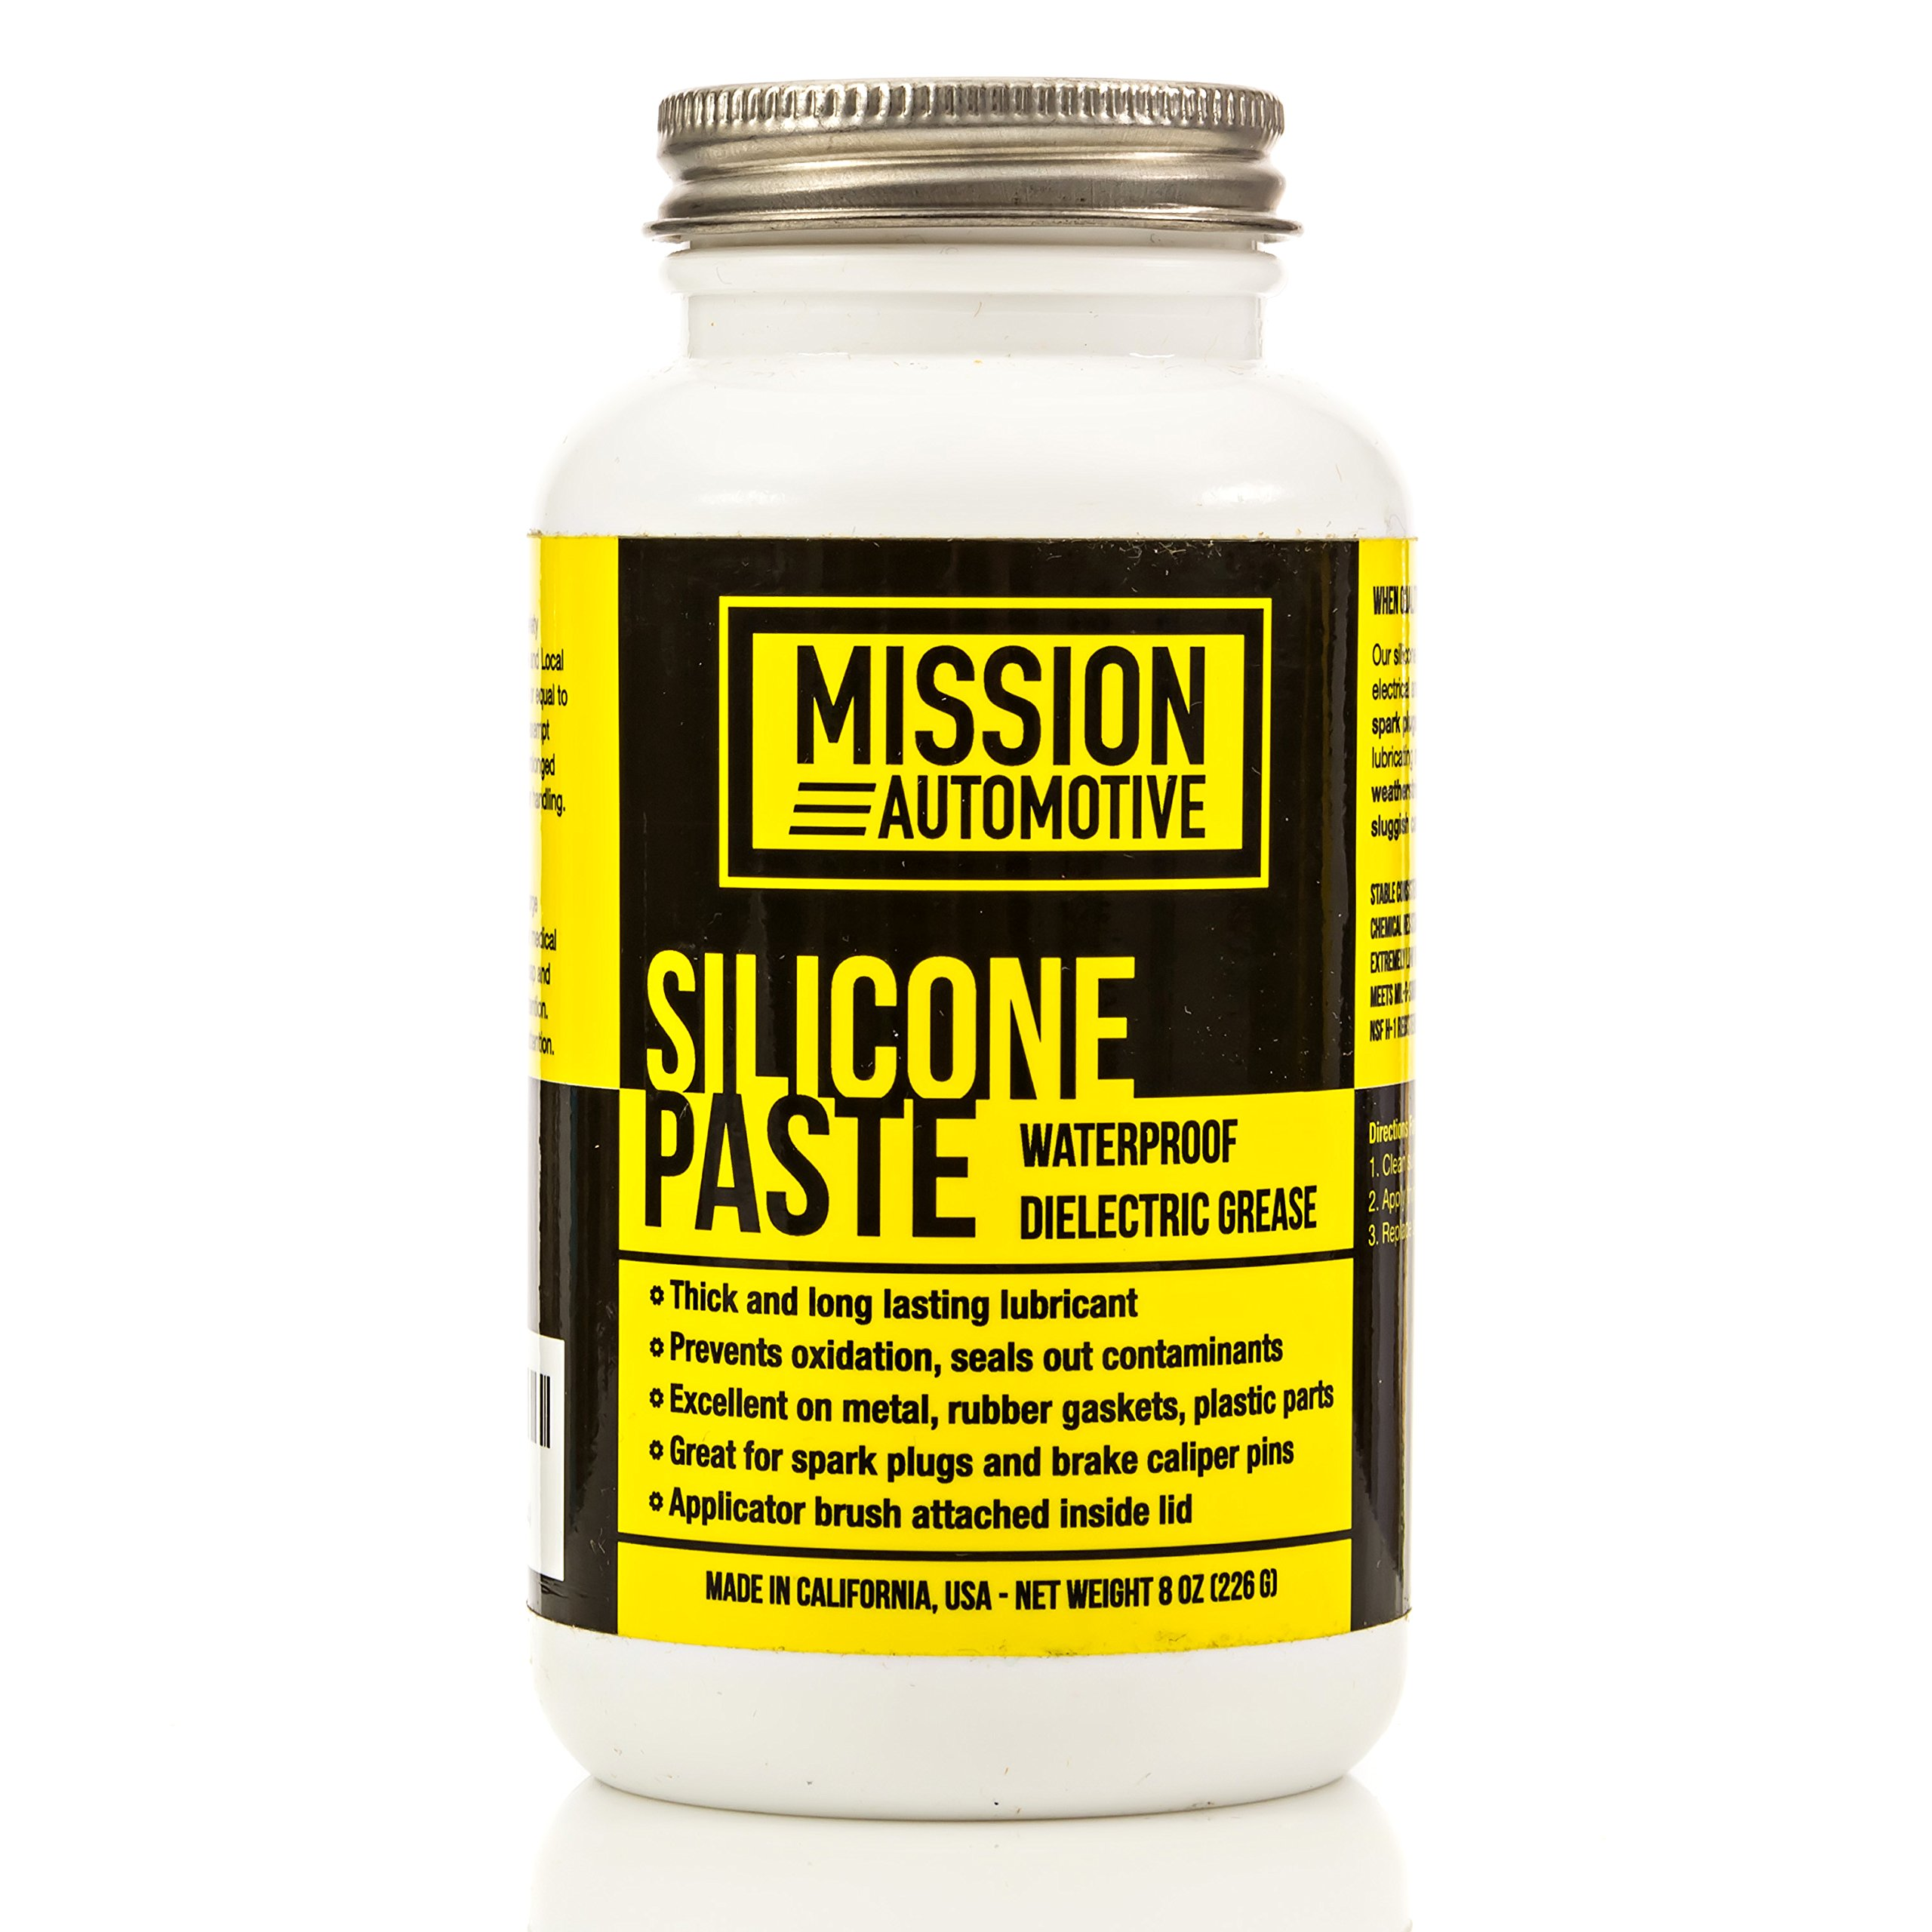 Mission Automotive Dielectric Grease/Silicone Paste/Waterproof Marine Grease (8 Oz.) - Made in USA - Excellent Silicone Grease by Mission Automotive